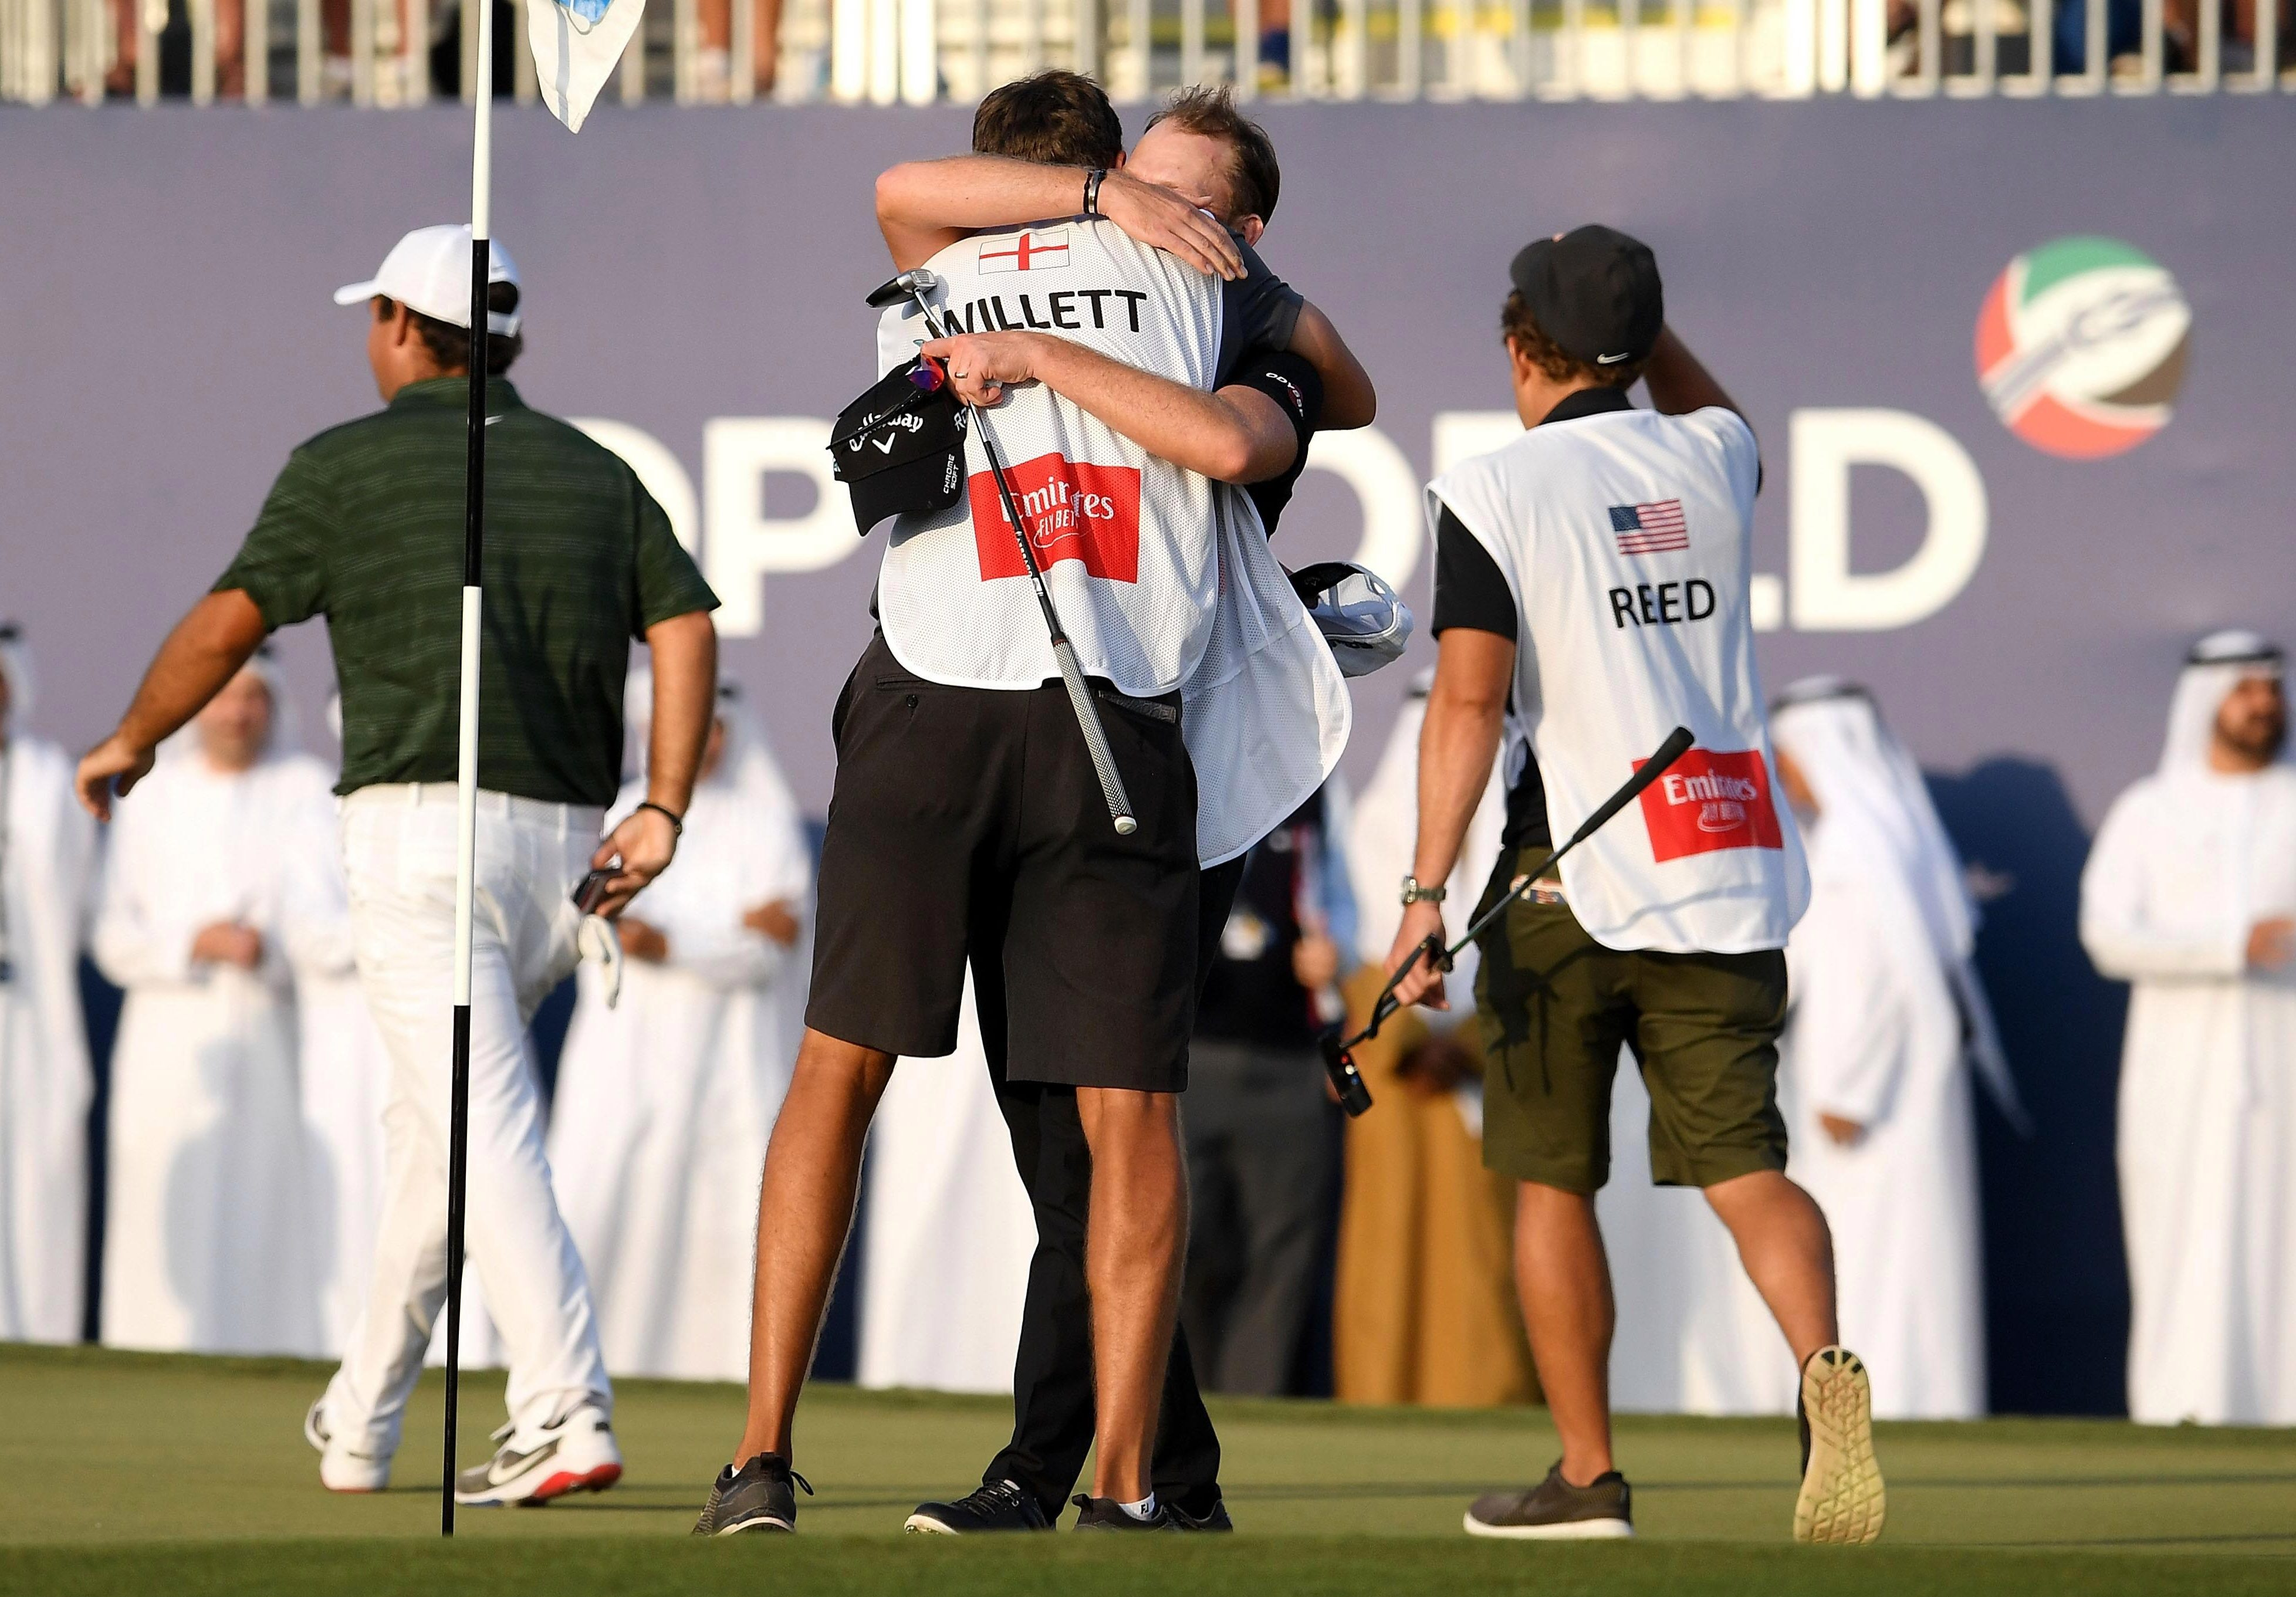 He held off Patrick Reed andMatt Wallace to win by two shots in Dubai